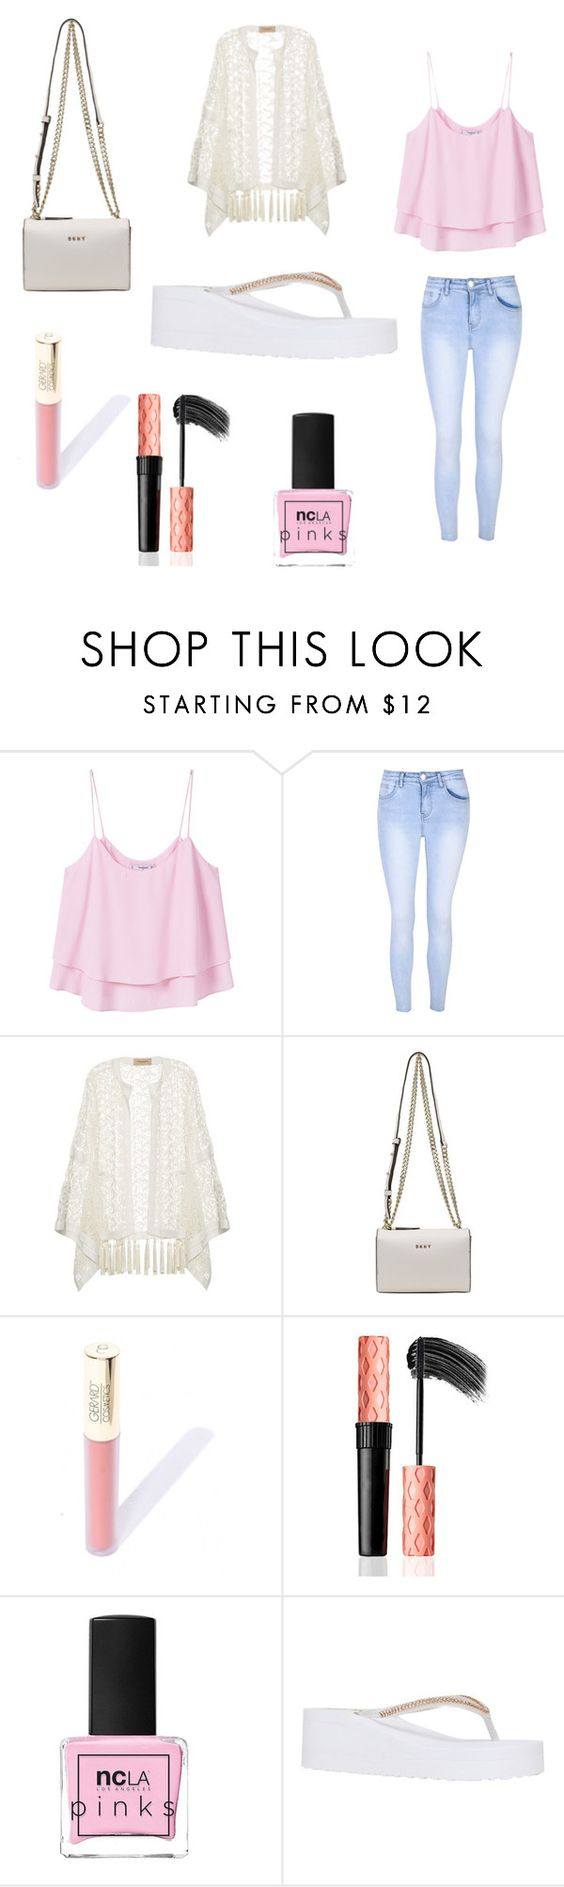 """Backyard BBQ Look"" by stylistthinkbig ❤ liked on Polyvore featuring MANGO, Glamorous, ADRIANA DEGREAS, DKNY, ncLA and Miss KG"